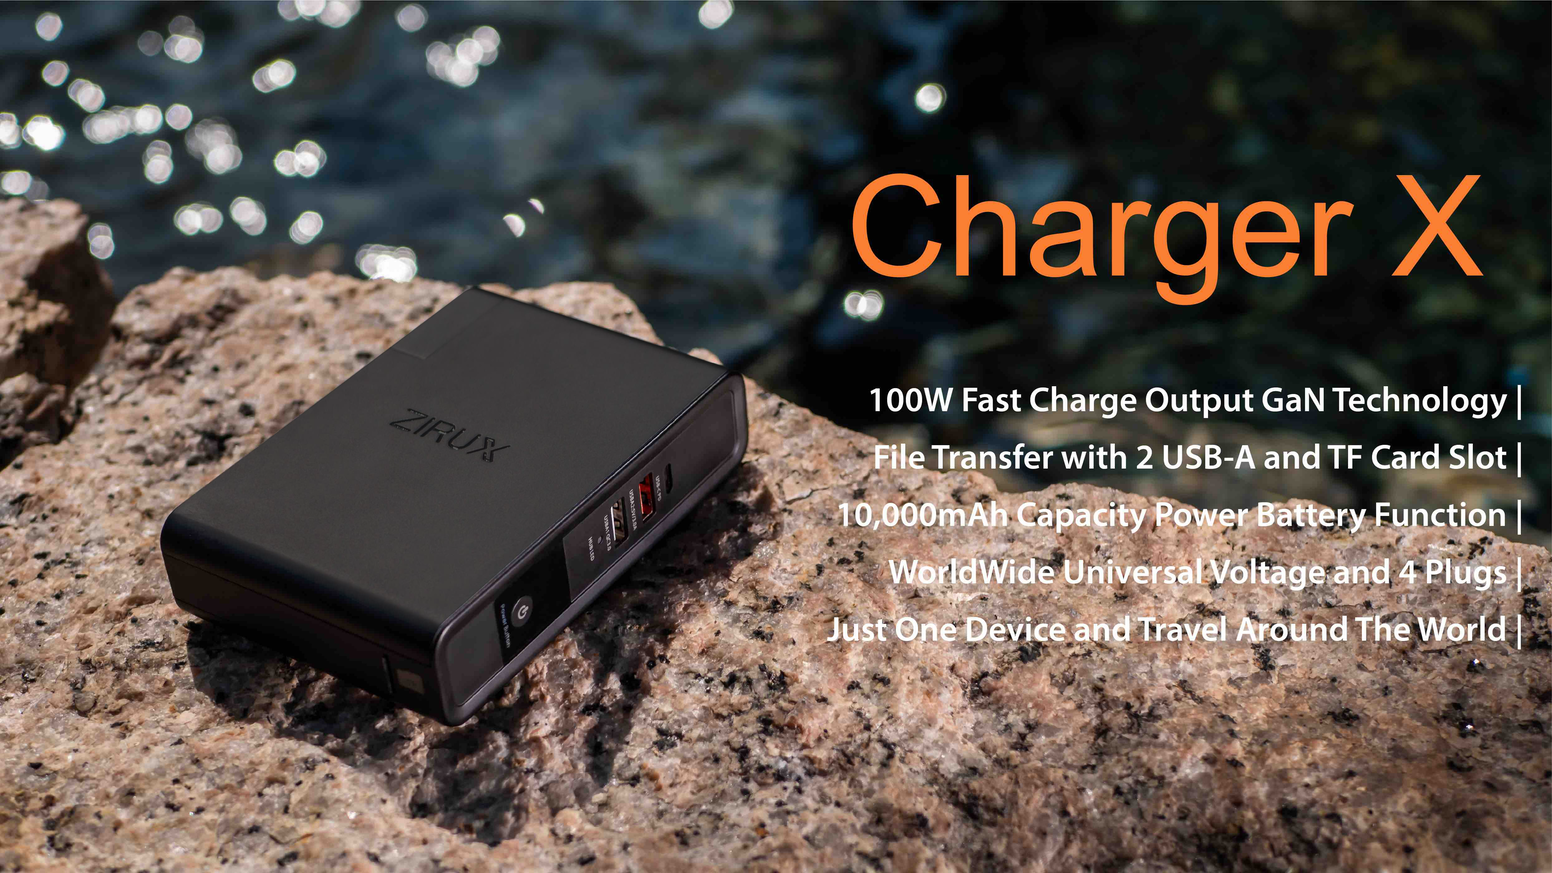 100W Fast Charge Output GaN Technology | File Transfer with 2 USB-A and microSD Card Slot | 10,000mAh Capacity Power Battery Function